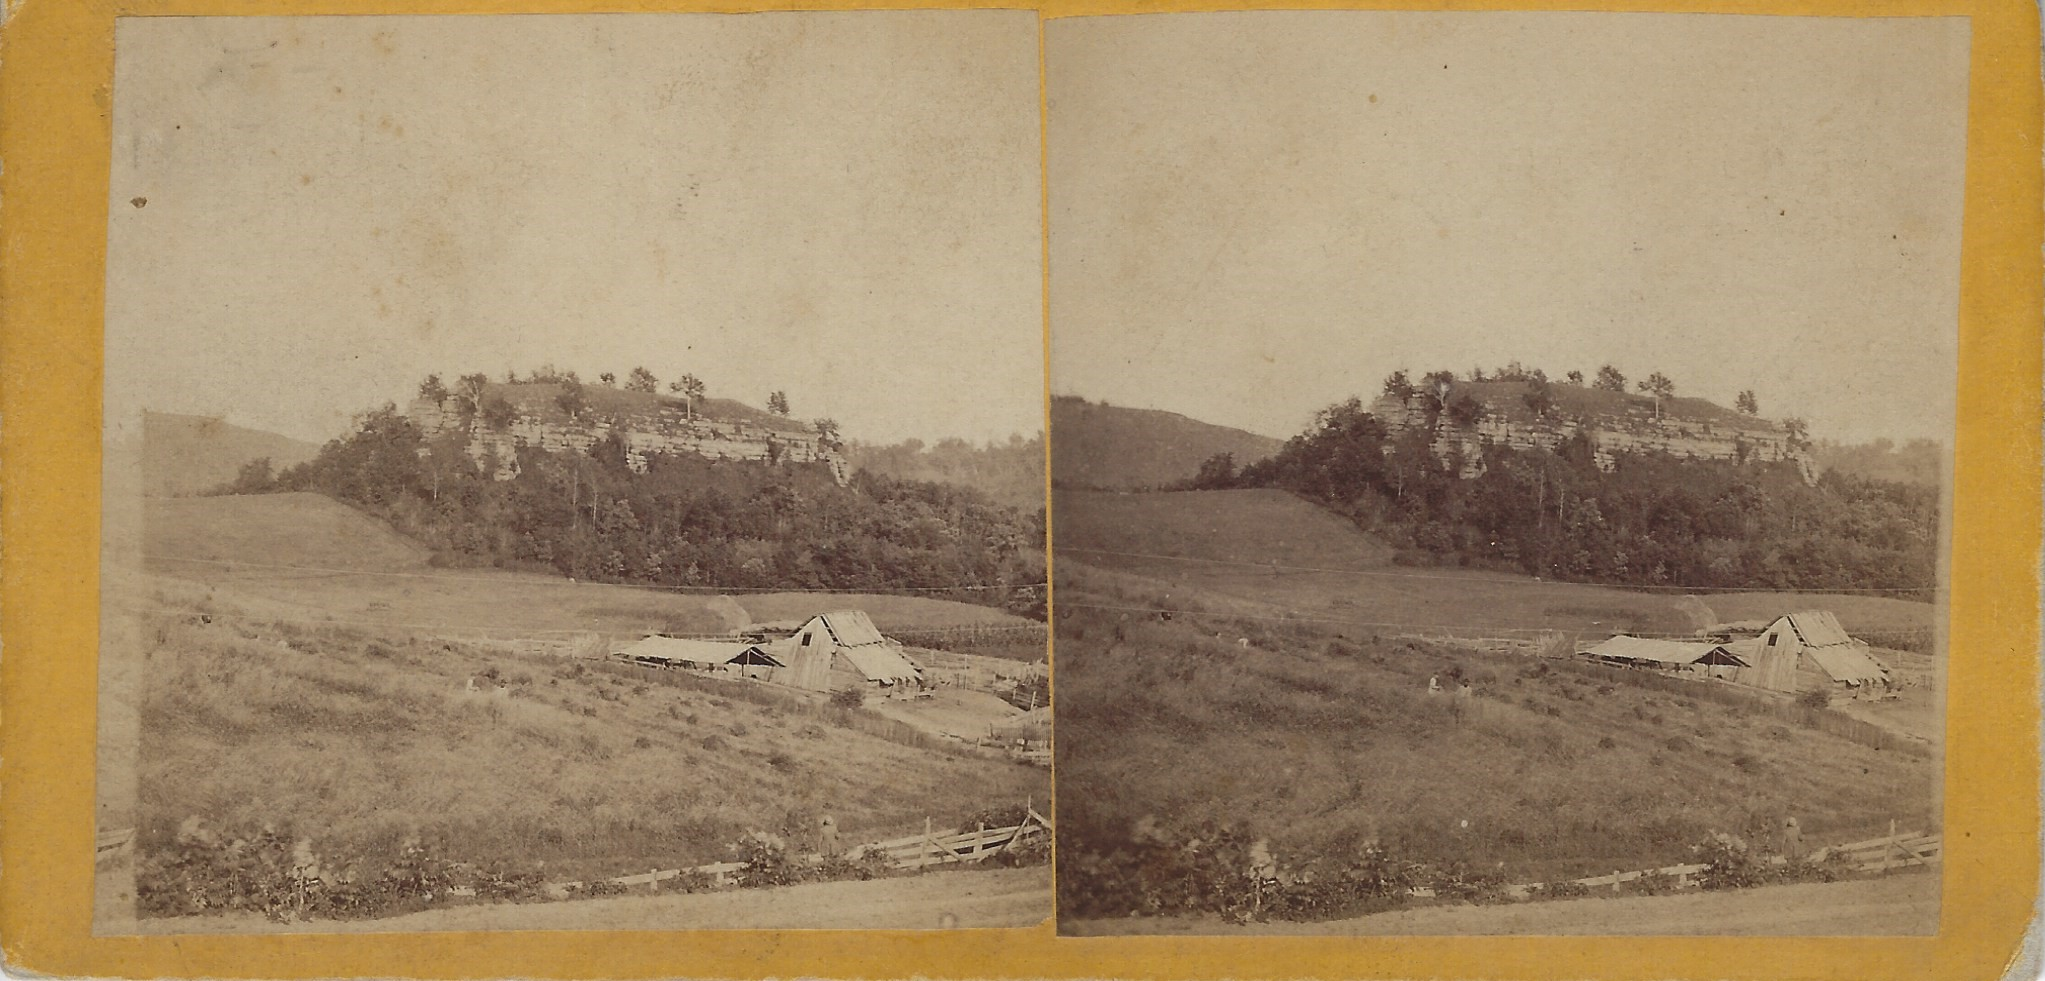 LJTP 100.223 - S. Root SMT- Mound at Thompson's Mill - c1870